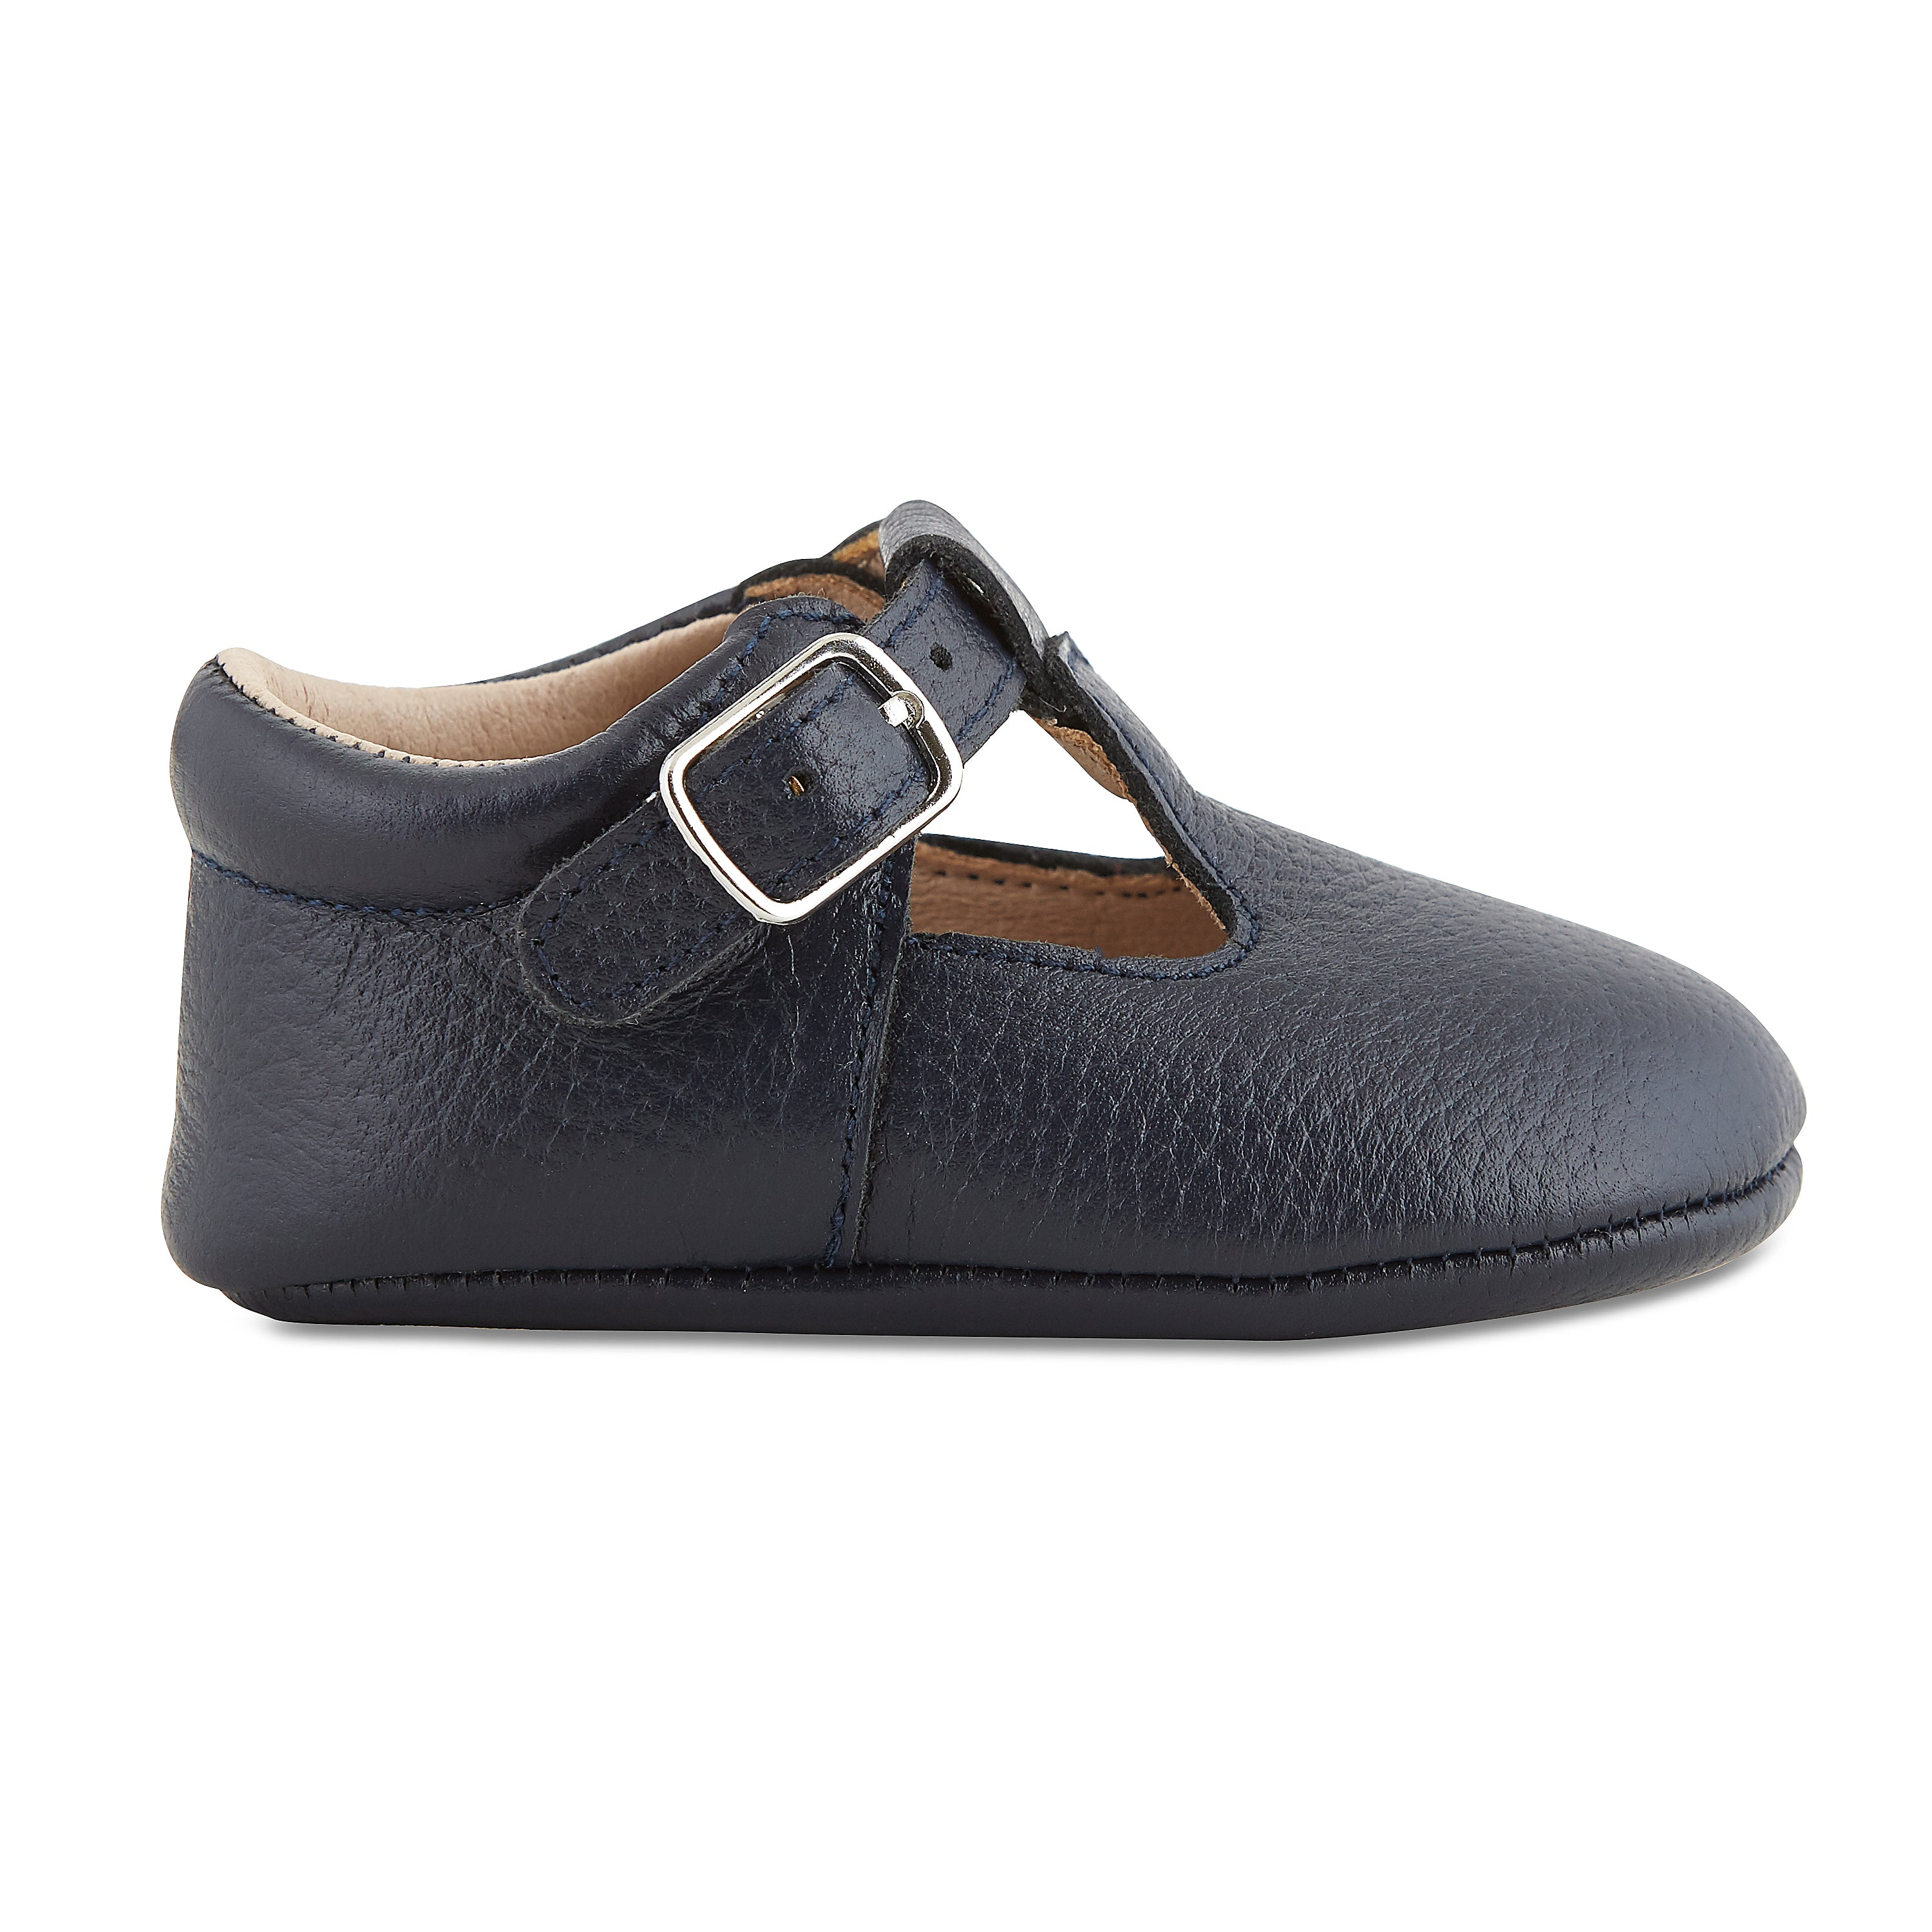 Soft-Sole Leather Mary Jane Moccasins - NAVY